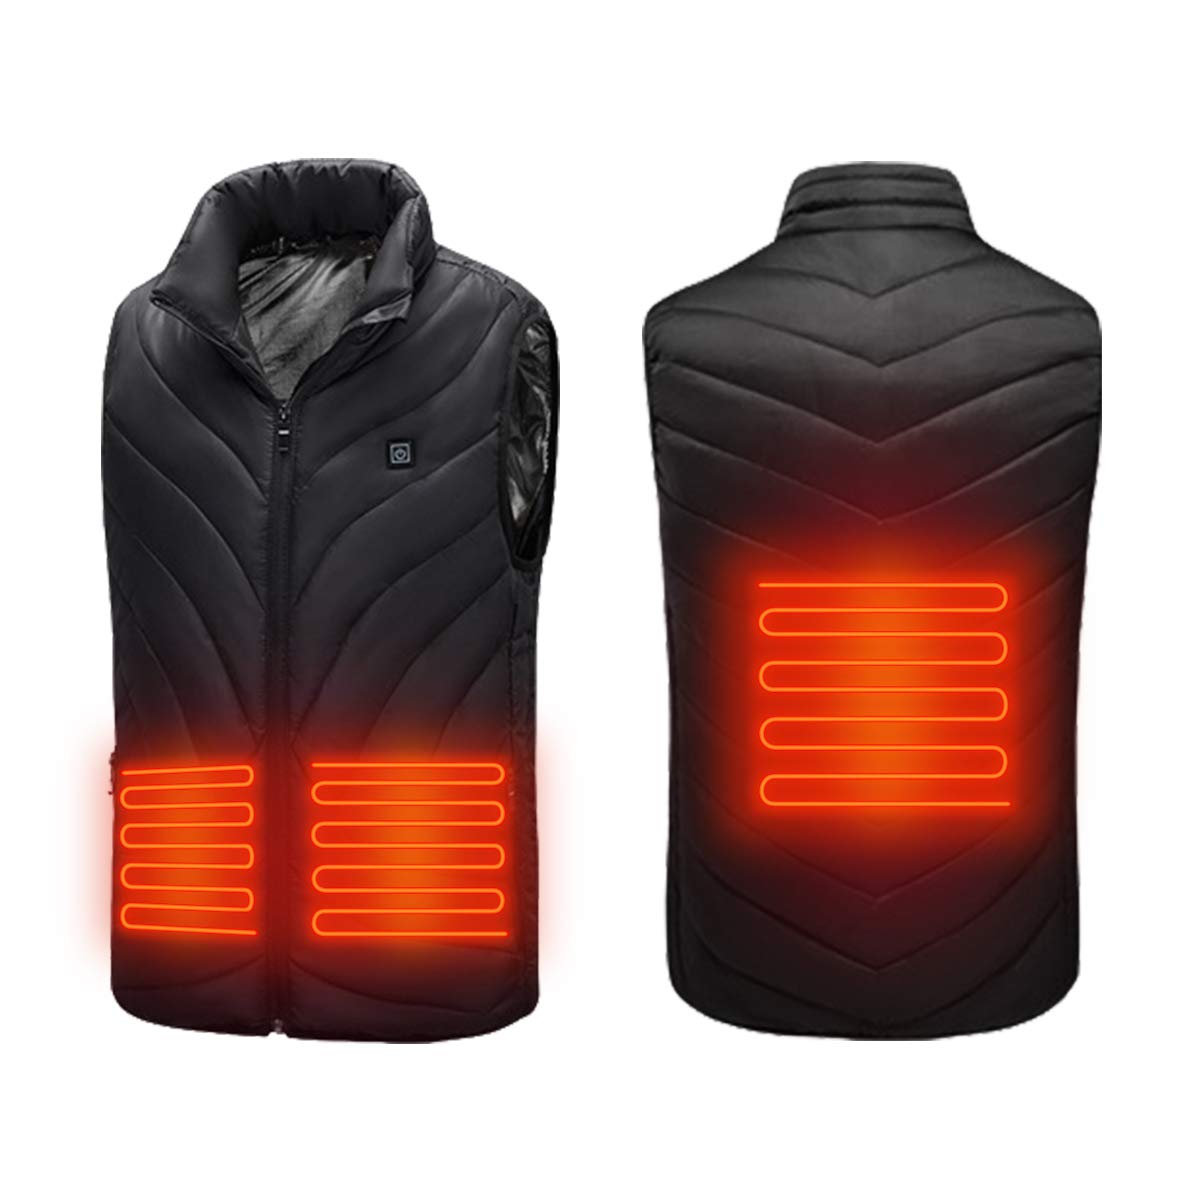 MaByTre Heated Vest Standing Collar Electric Jacket Clothes Heating Body Warmer USB Rechargeable Washable Lightweight Gilet with 3 Temperature for Camp Outdoor Skiing (No Battery)